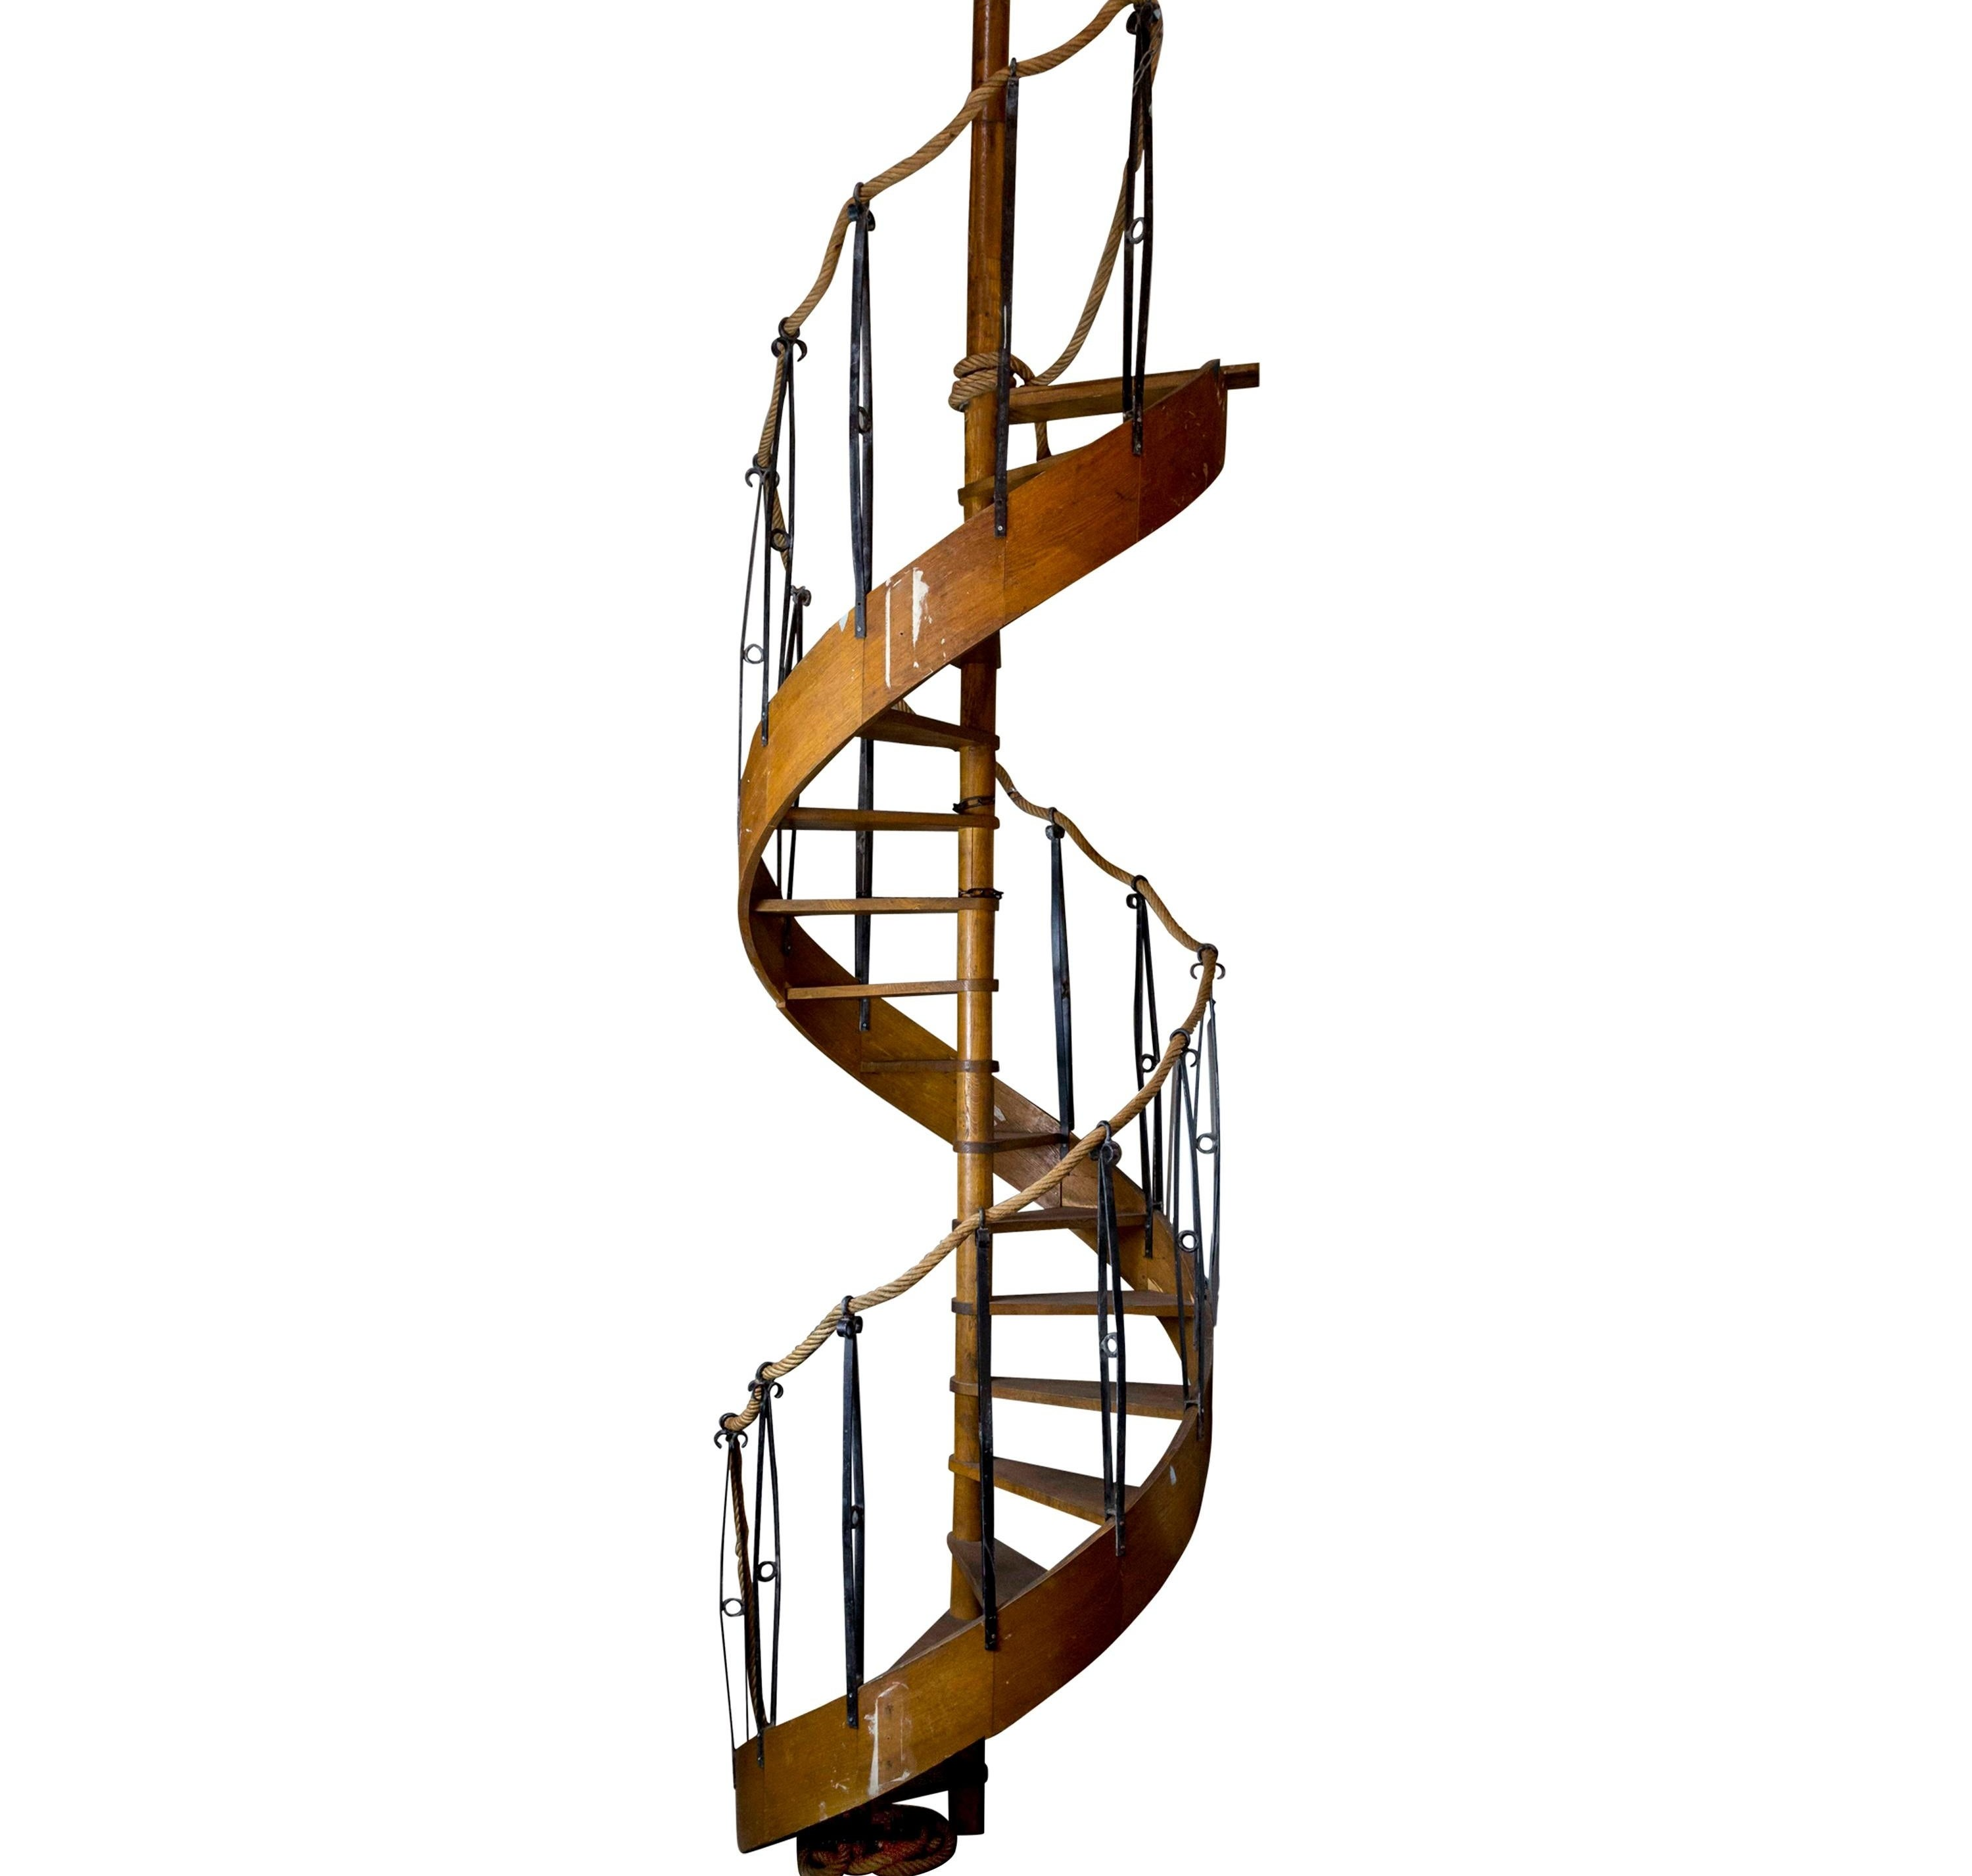 1930S Wood Spiral Staircase With Wrought Iron Balusters And Rope | Iron Balusters For Sale | Metal | Wood Iron | Indoor | Rectangular | Forged Steel